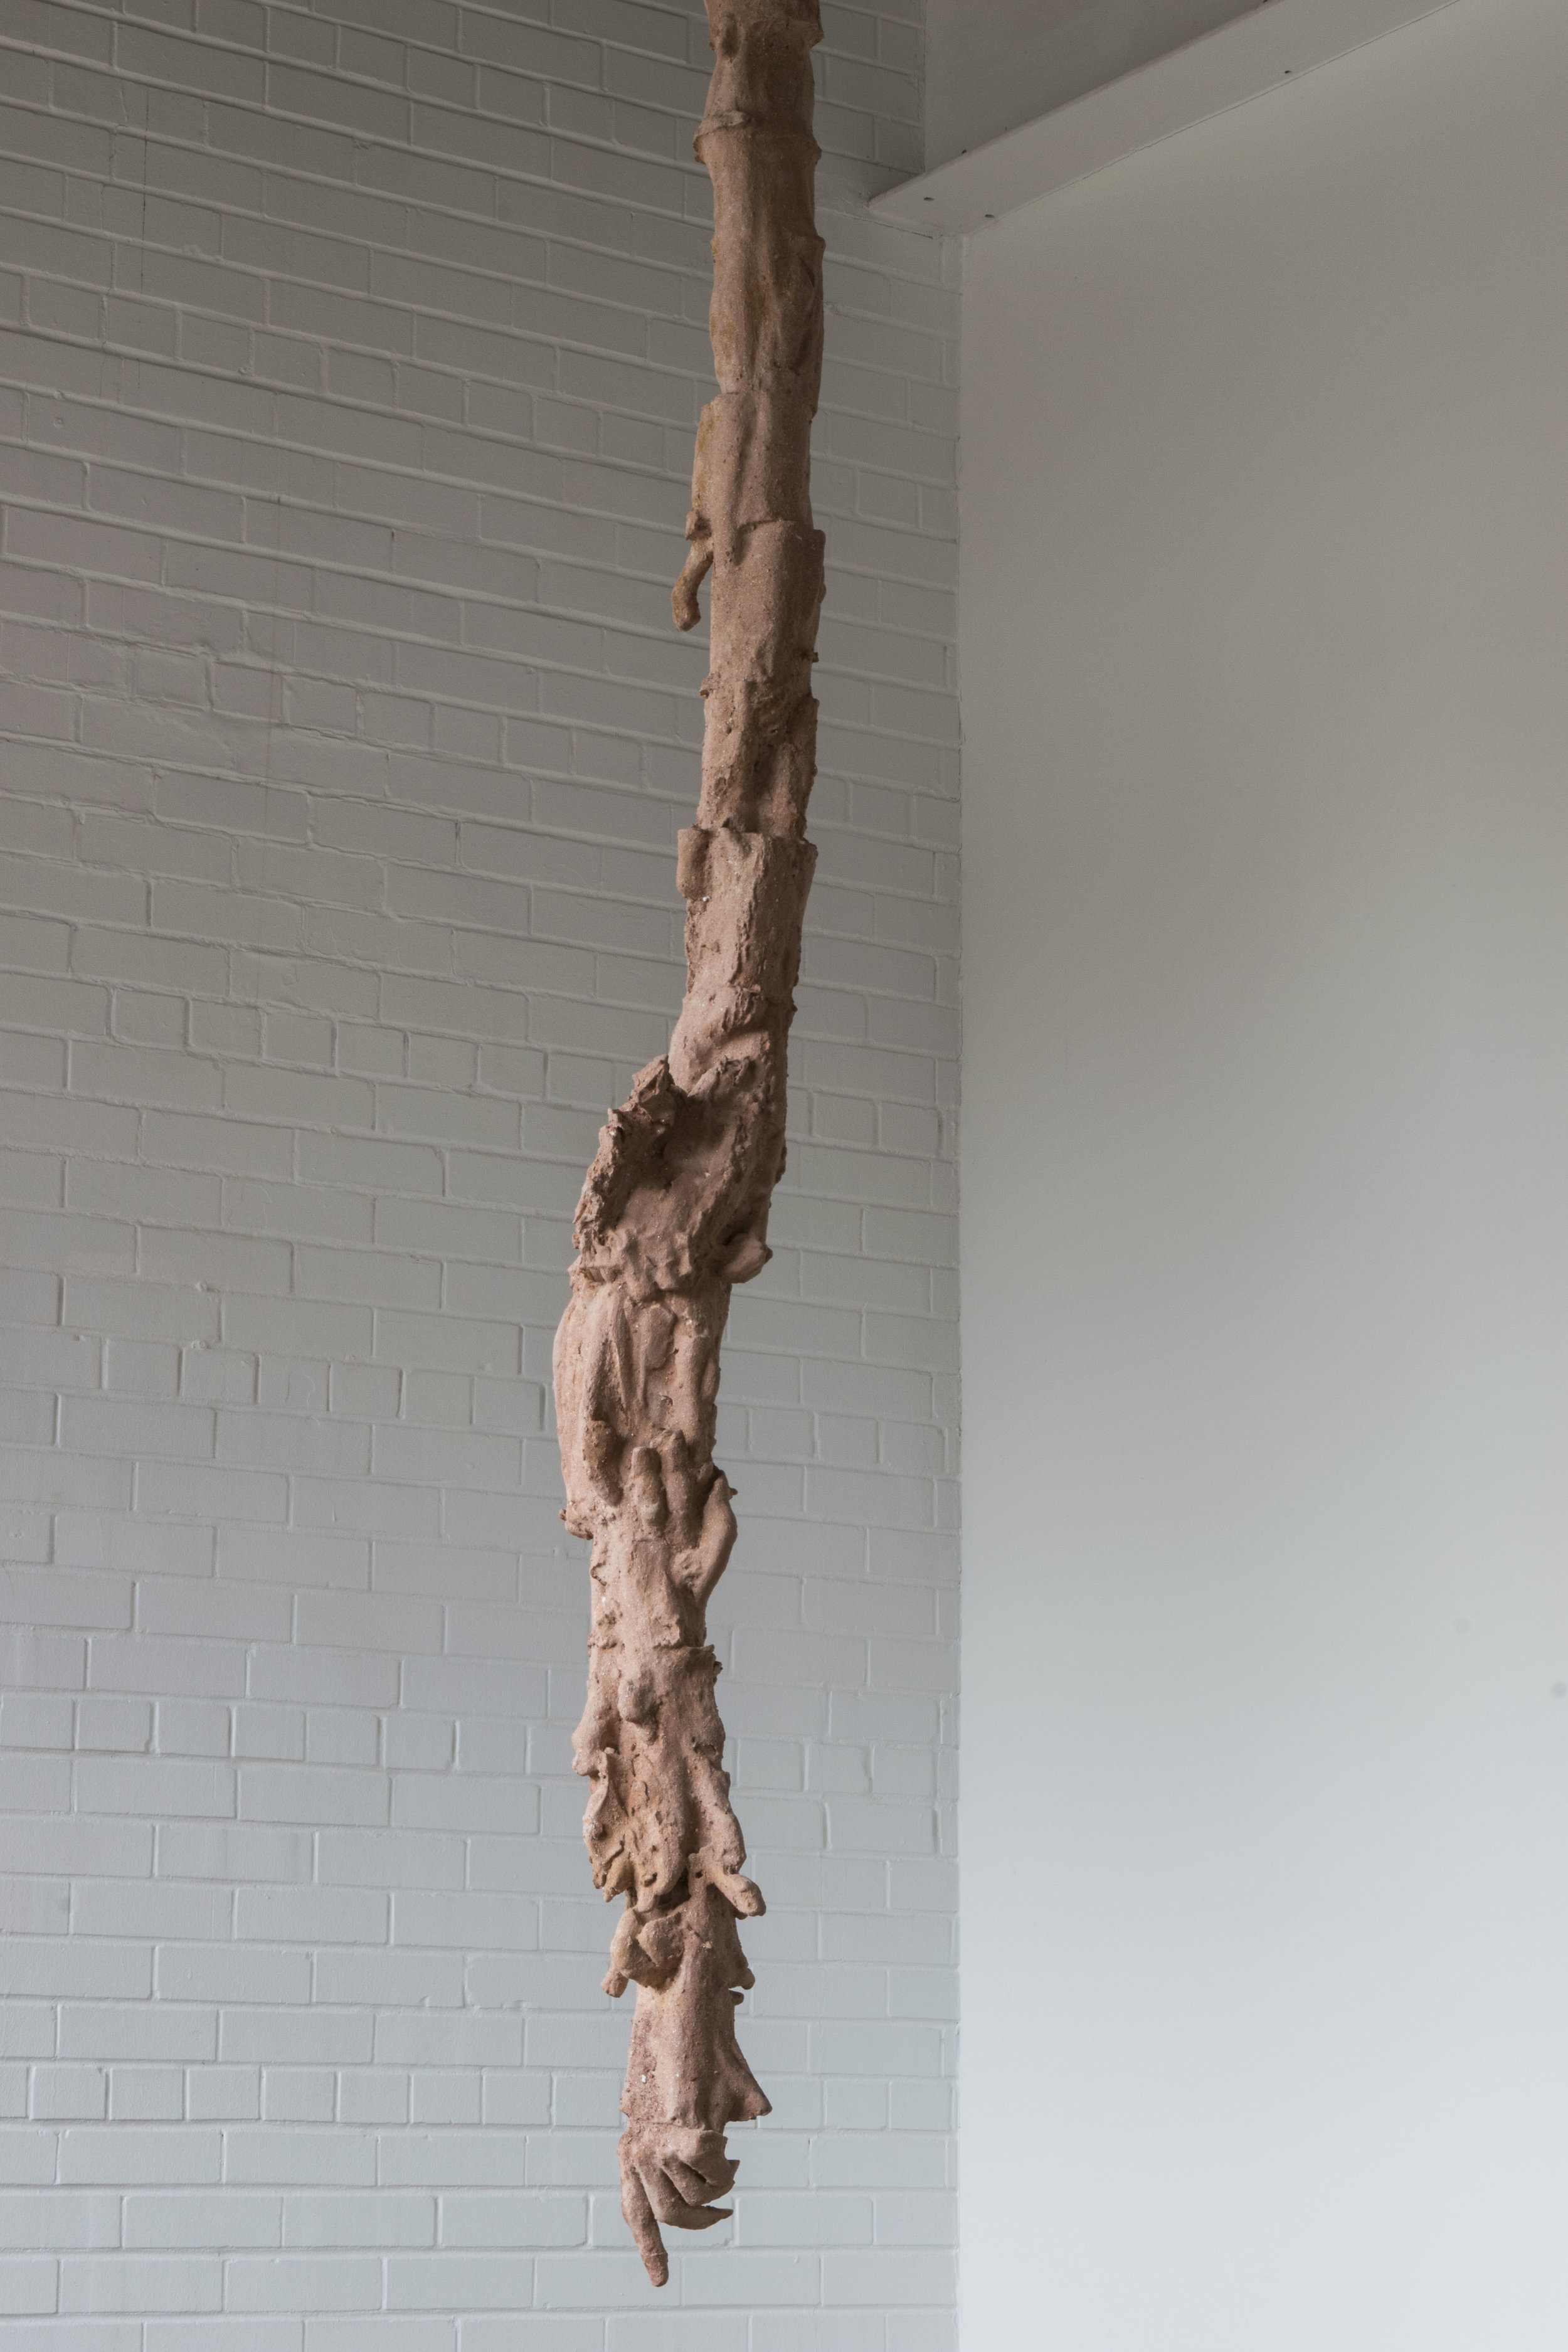 Root,  2016. Plaster, steel, clay dust, adhesive.